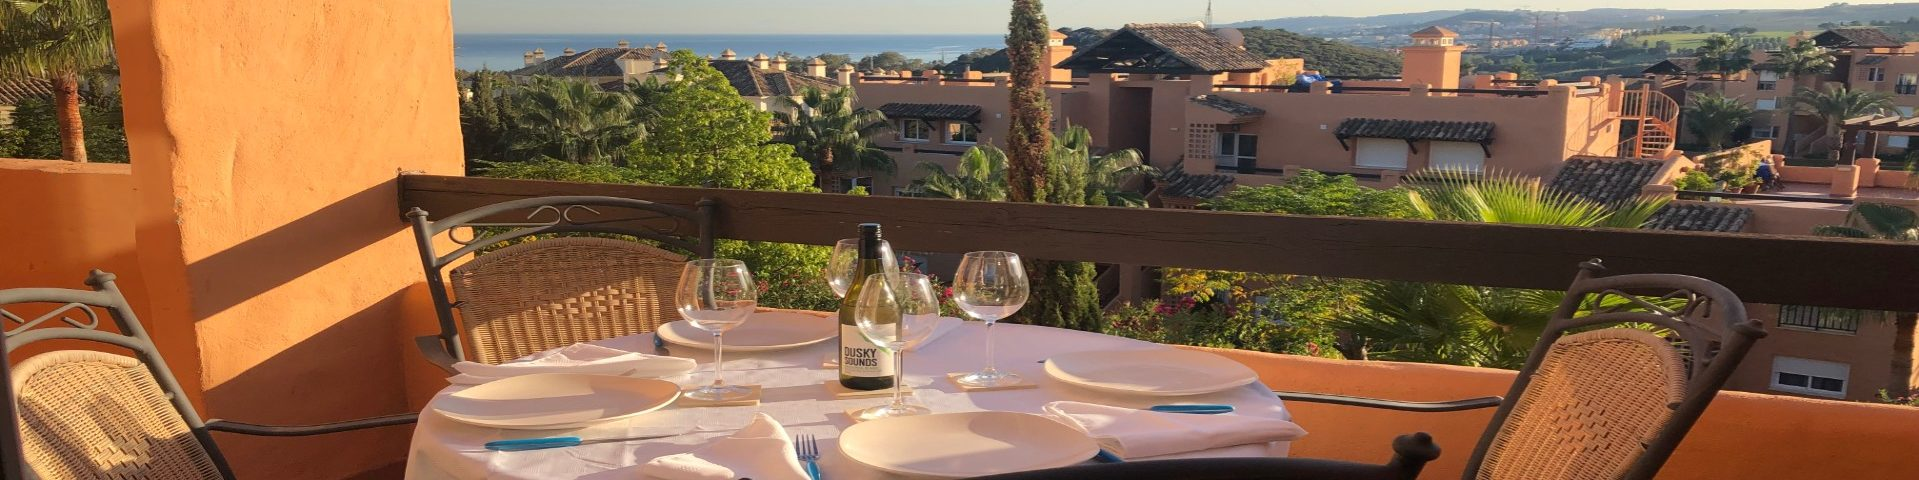 Dining al fresco with a beautiful sea view